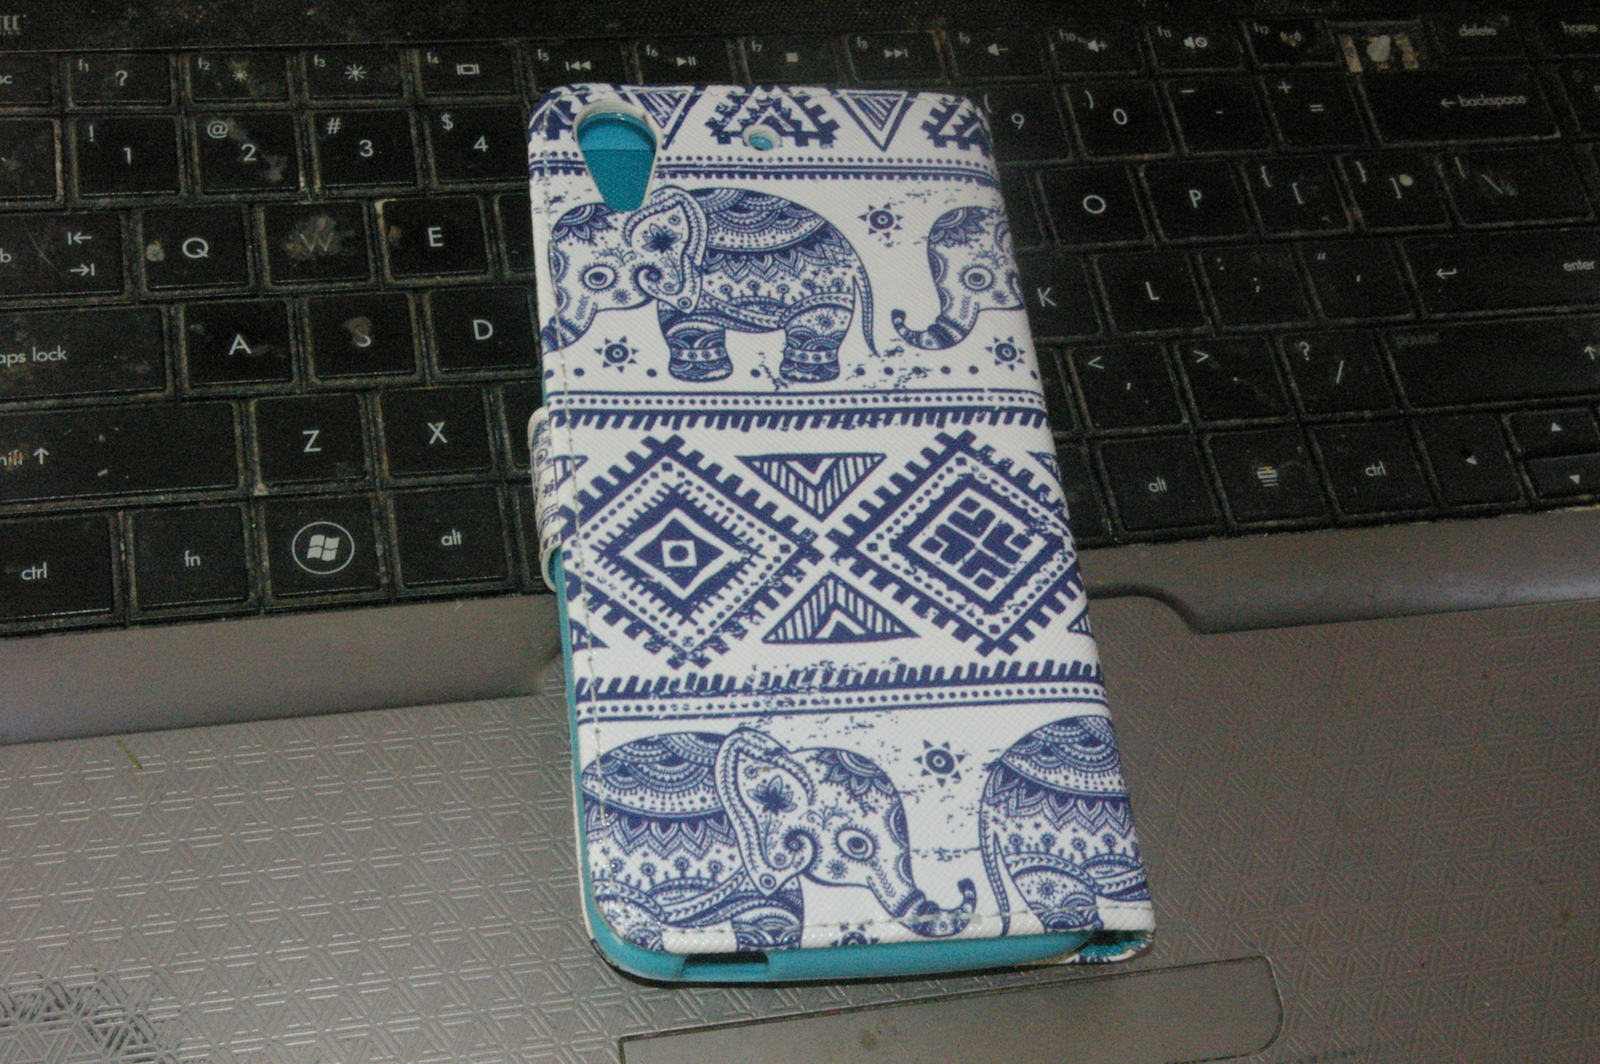 HTC Desire 626S Flip Wallet Cell Phone Case Card Holder Pocket Elephant Design